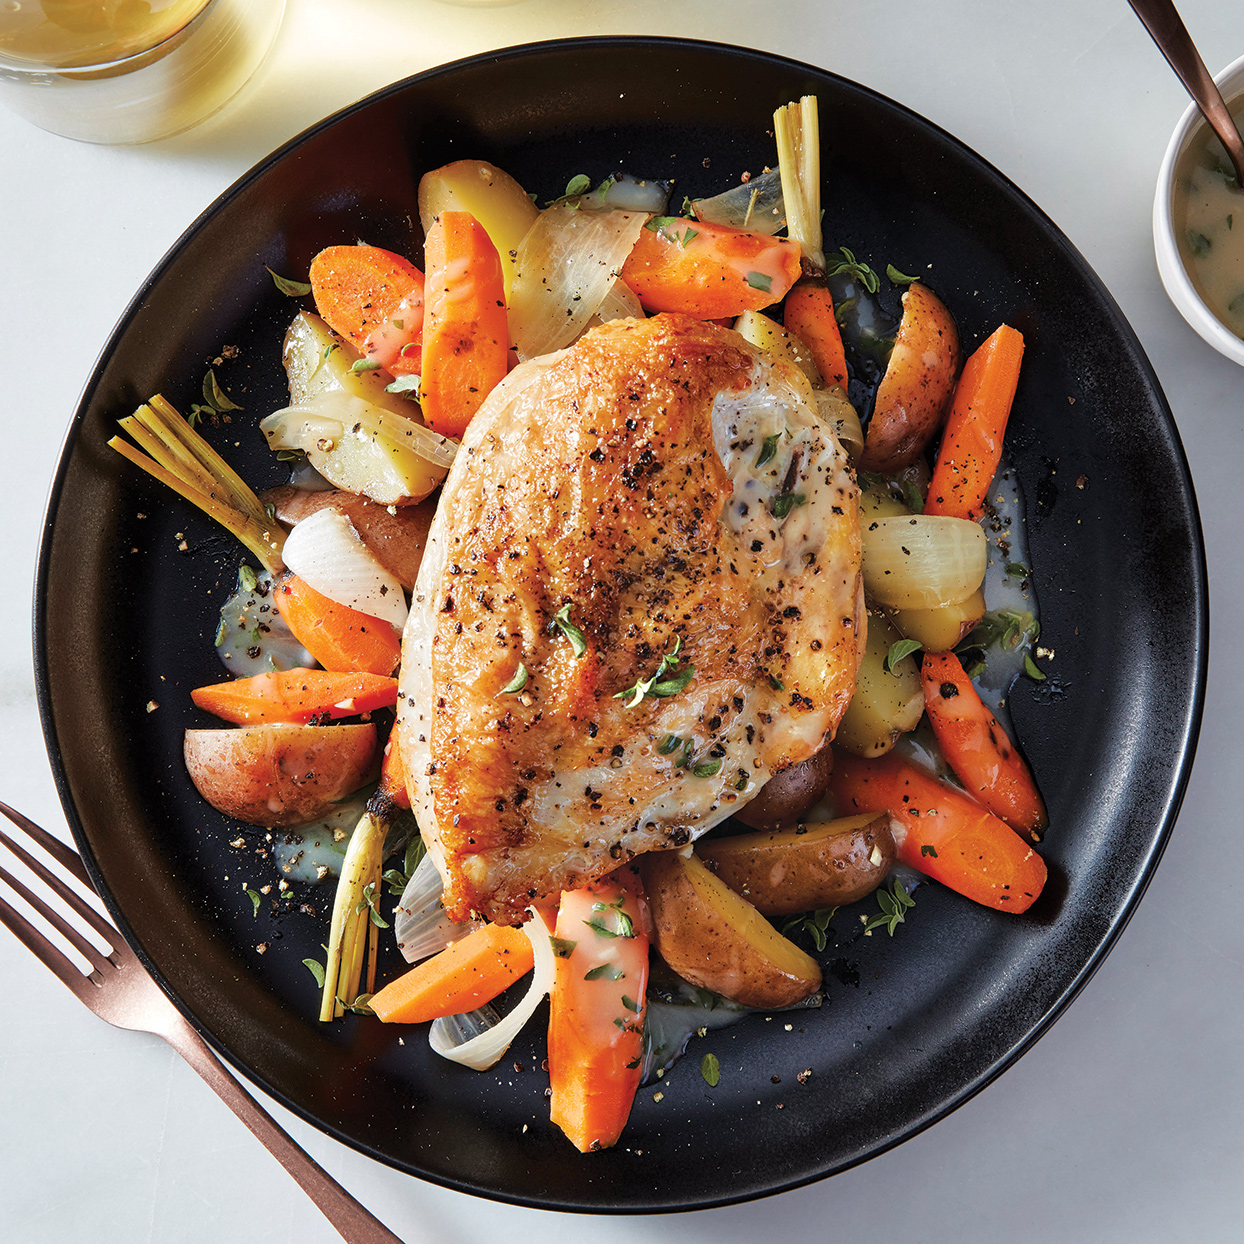 Impress the in-laws, neighbors or any other dinner guests with this pretty dish. It's a slow-cooker chicken recipe that actually looks and tastes like it was oven-roasted. To save time, prep the vegetables a day ahead or in the morning, and then refrigerate until ready to brown the meat and start the slow cooker. Source: Everyday Slow Cooker